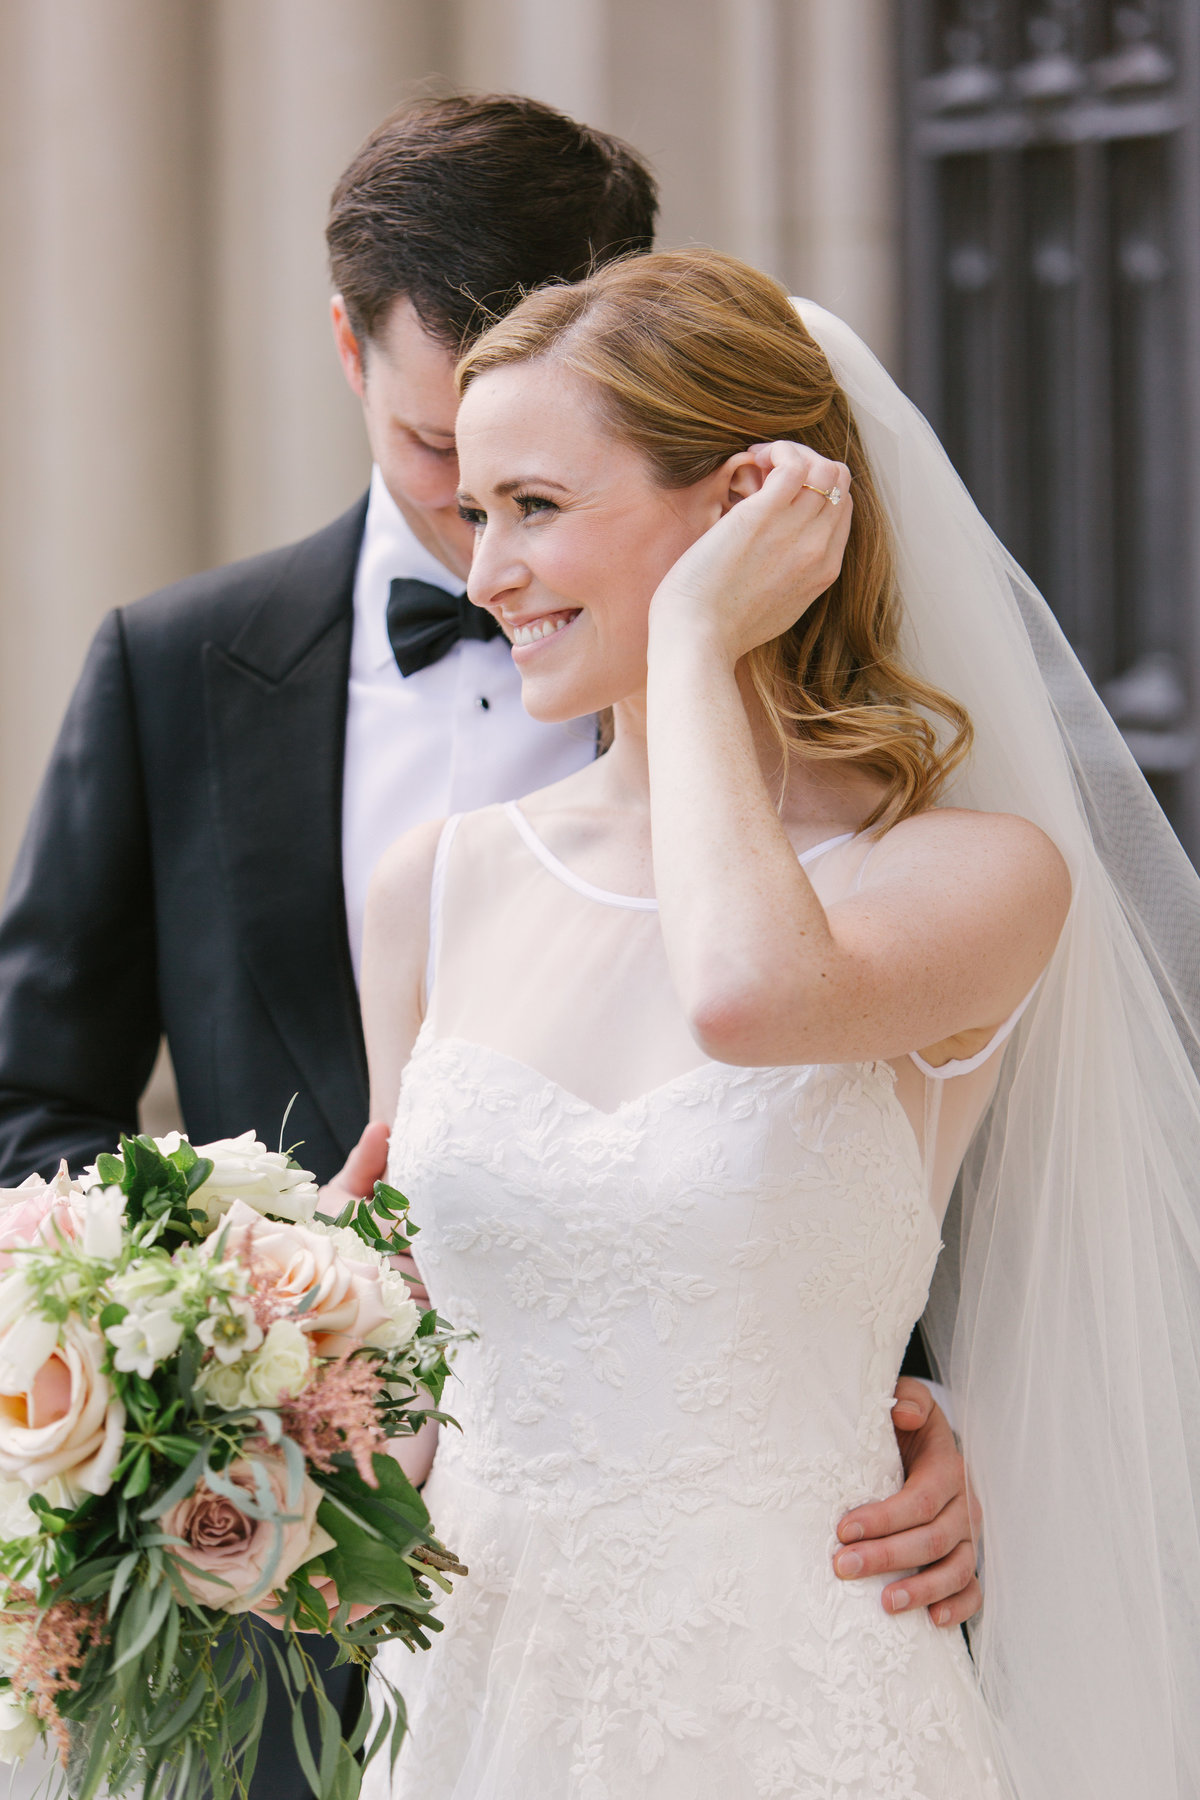 Scottish Rite Cathedral Wedding Bridal Veil Photo